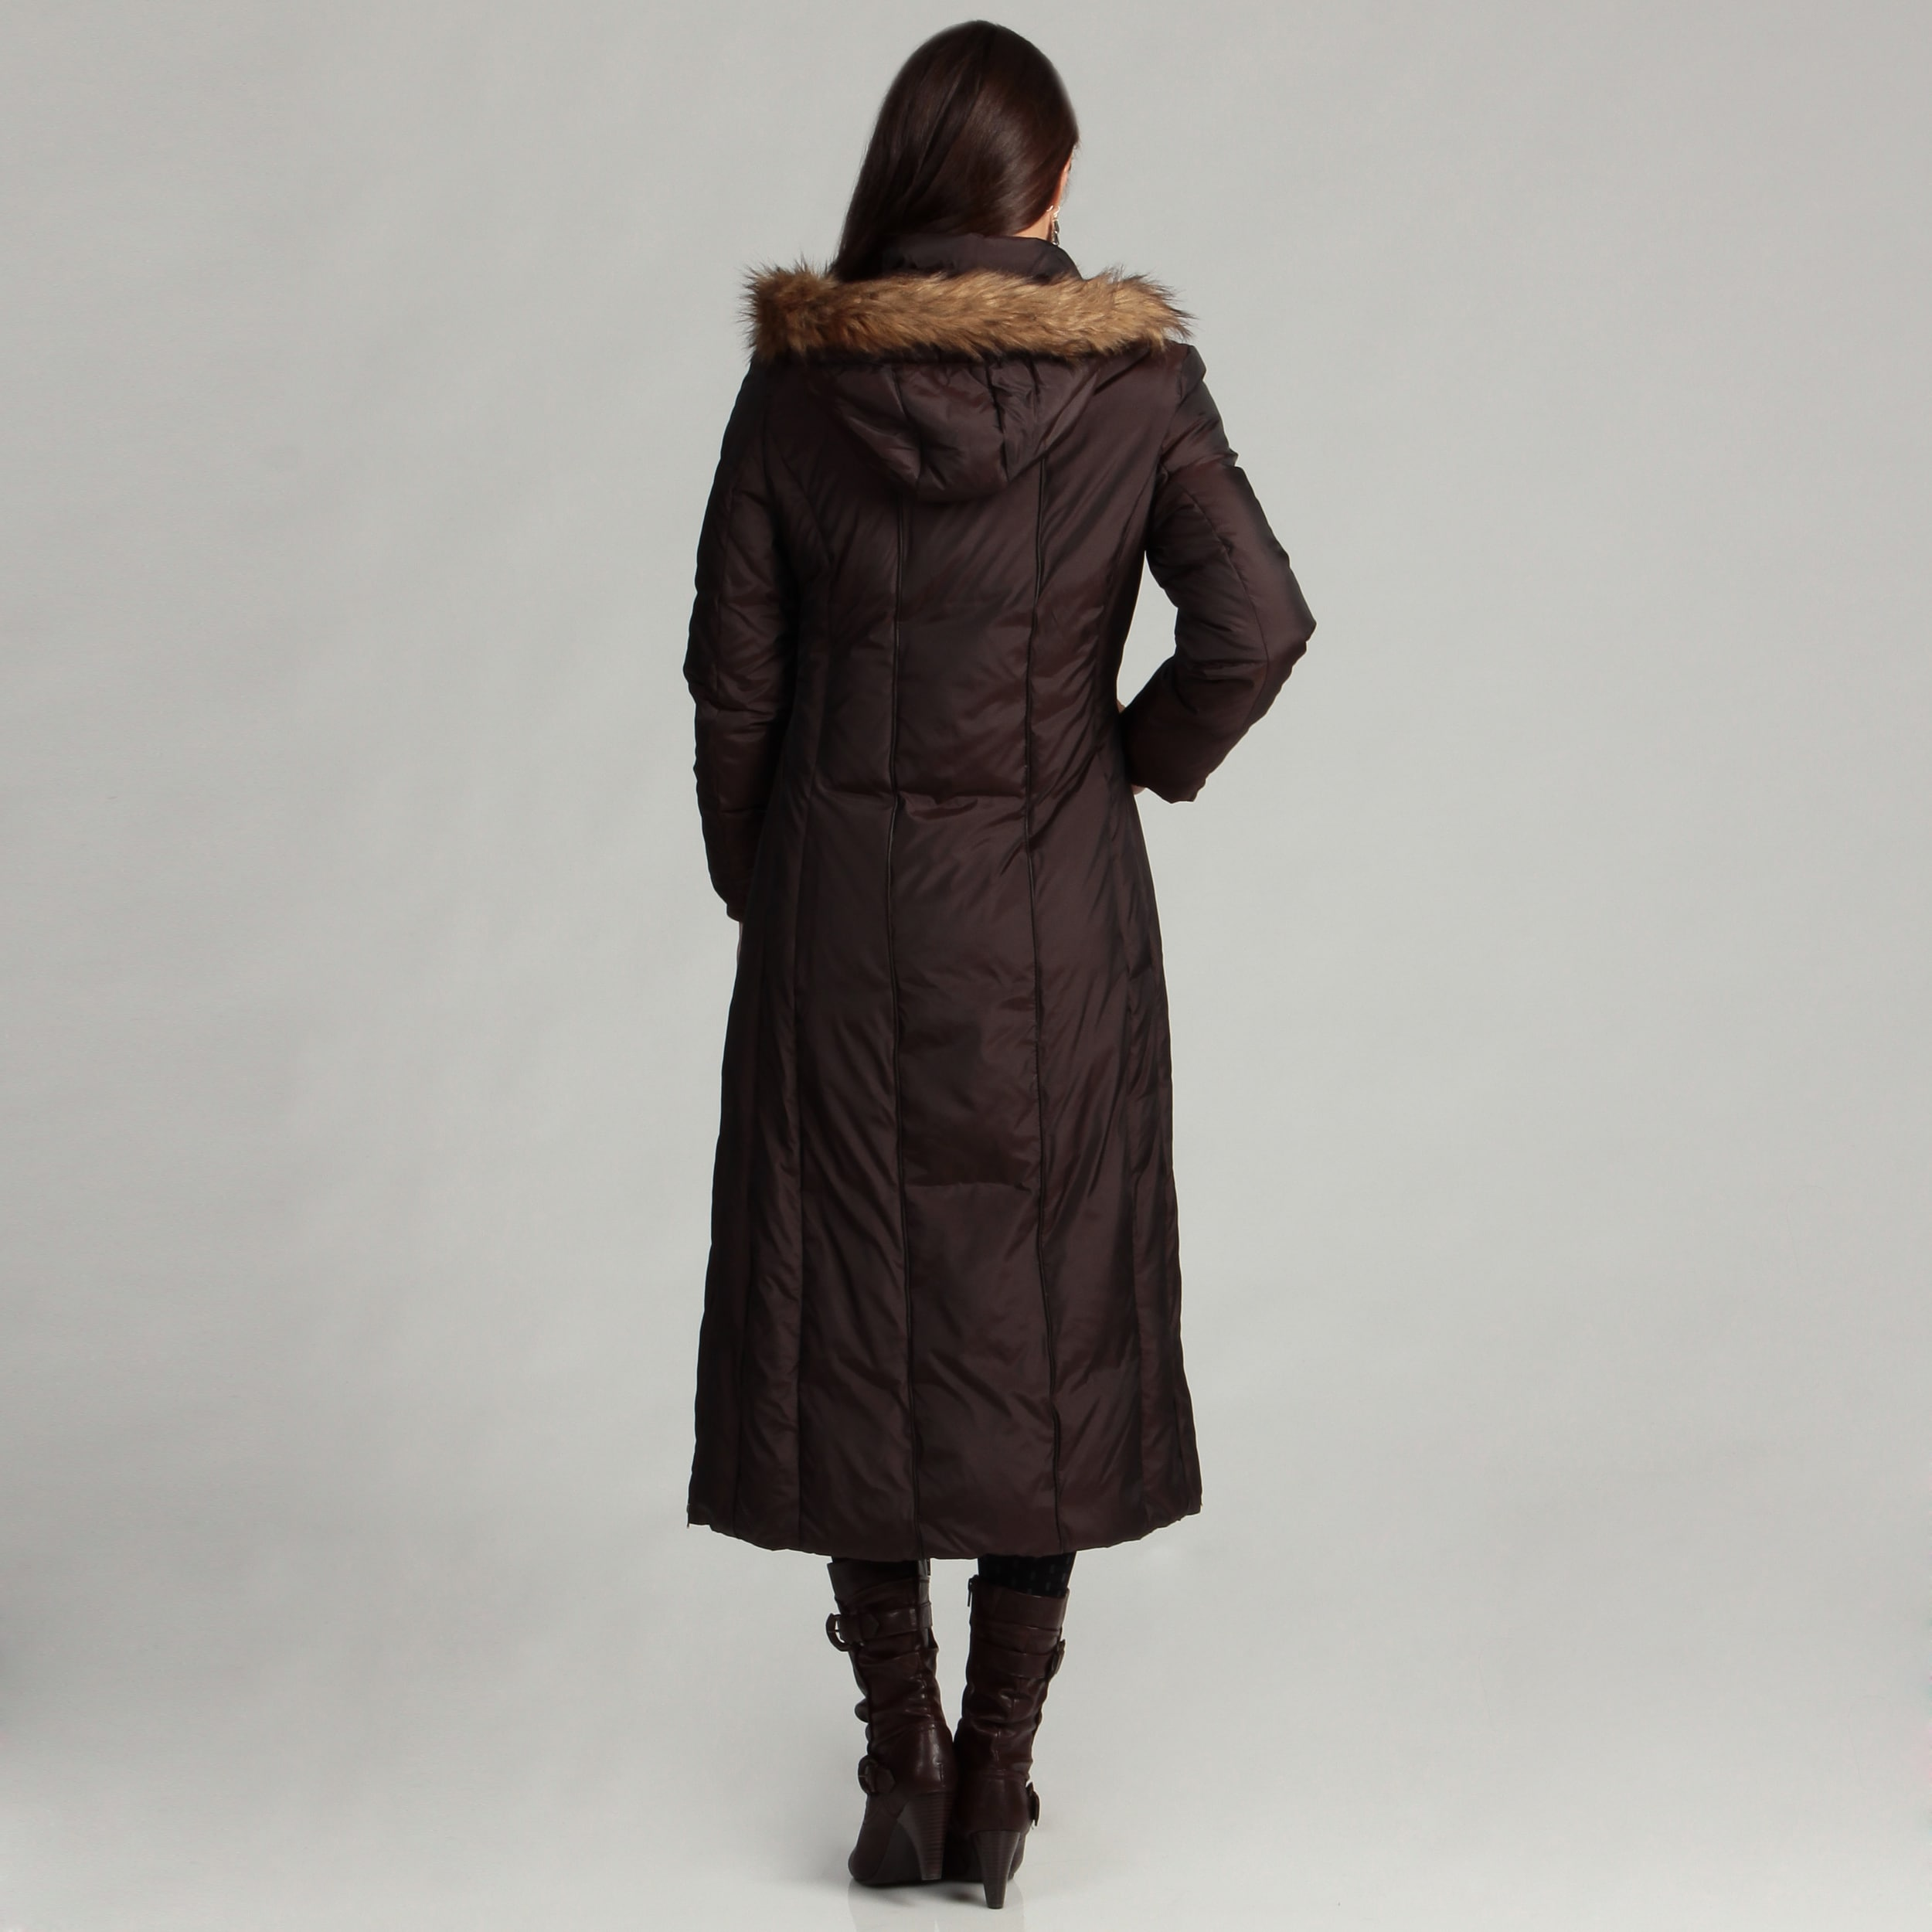 ad62f5d14b9bc7 Shop Anne Klein Women's Long Down Piped Coat - Free Shipping On Orders Over  $45 - Overstock - 4867799